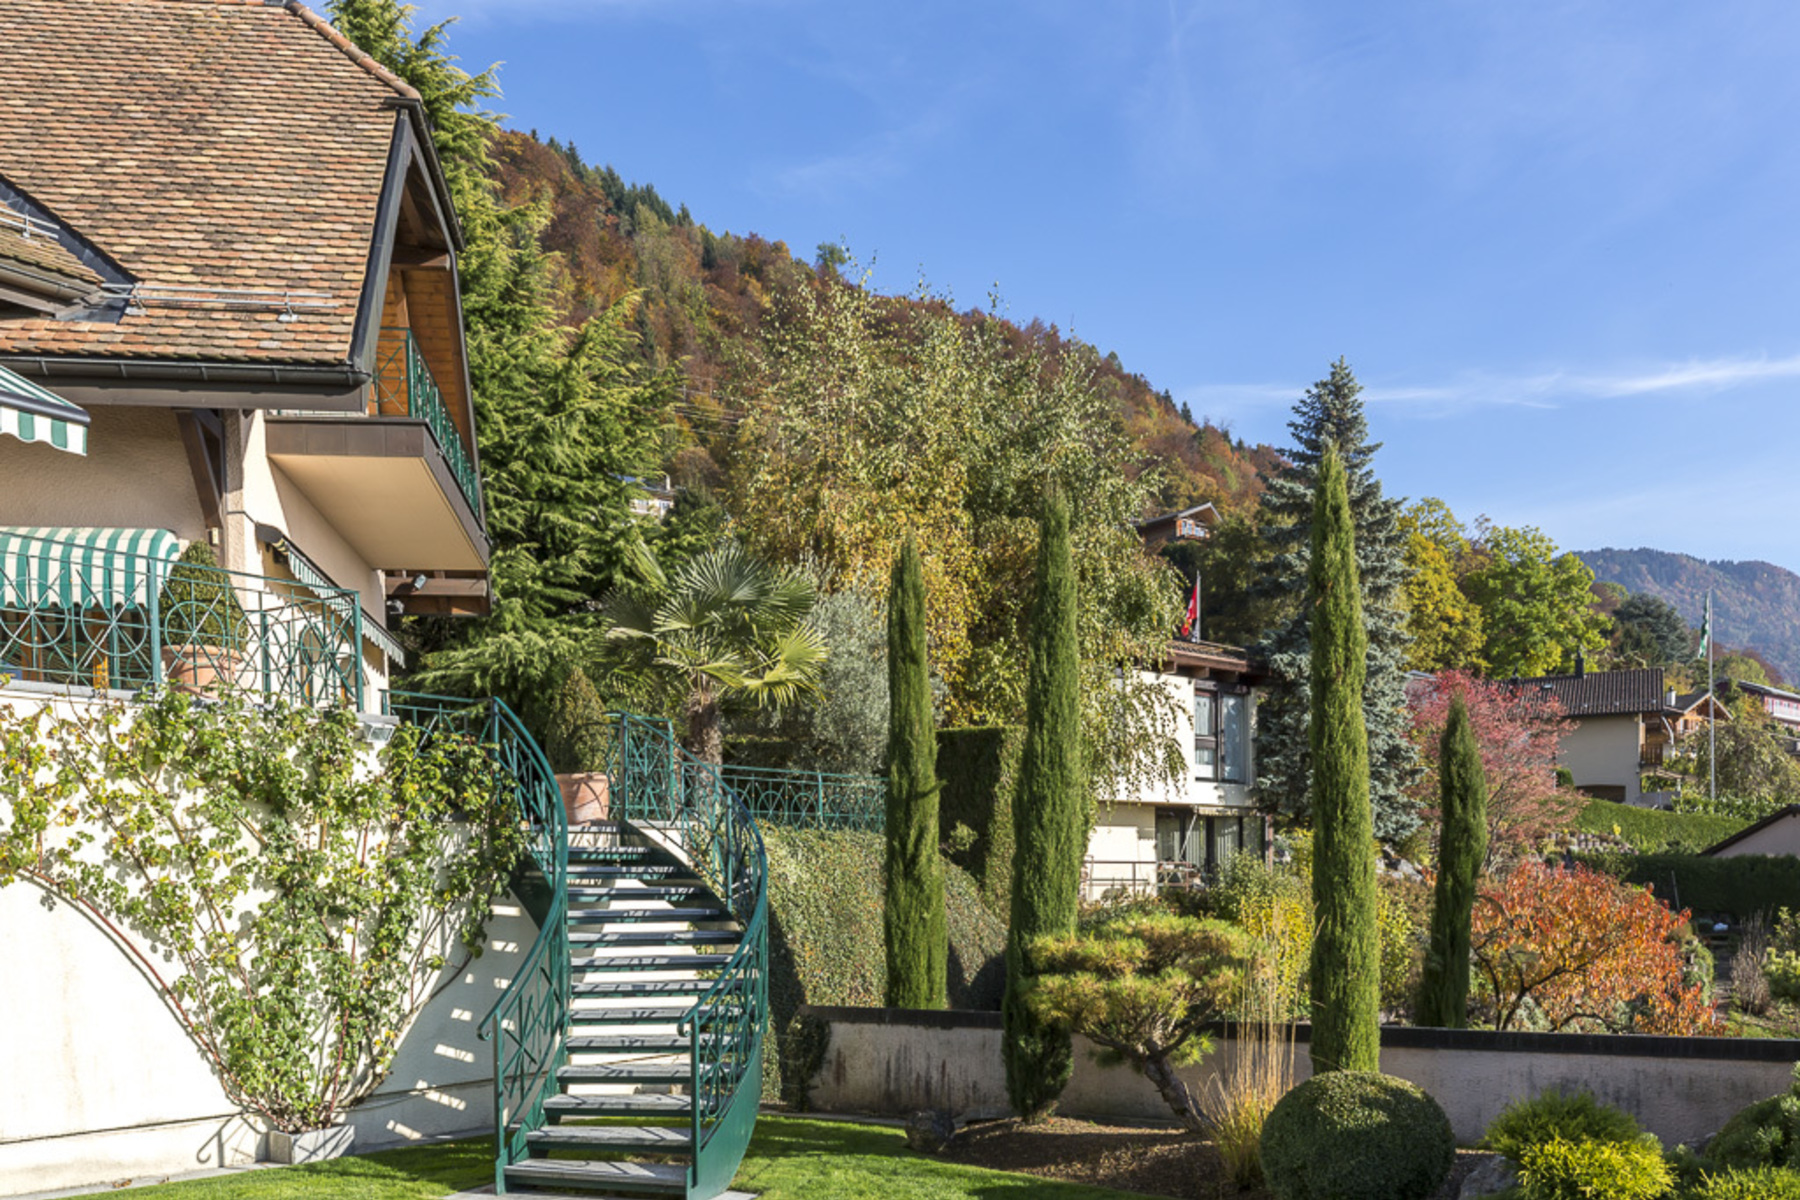 Casa Unifamiliar por un Venta en Superb property with spectacular view over the lake Blonay Blonay, Vaud, 1807 Suiza